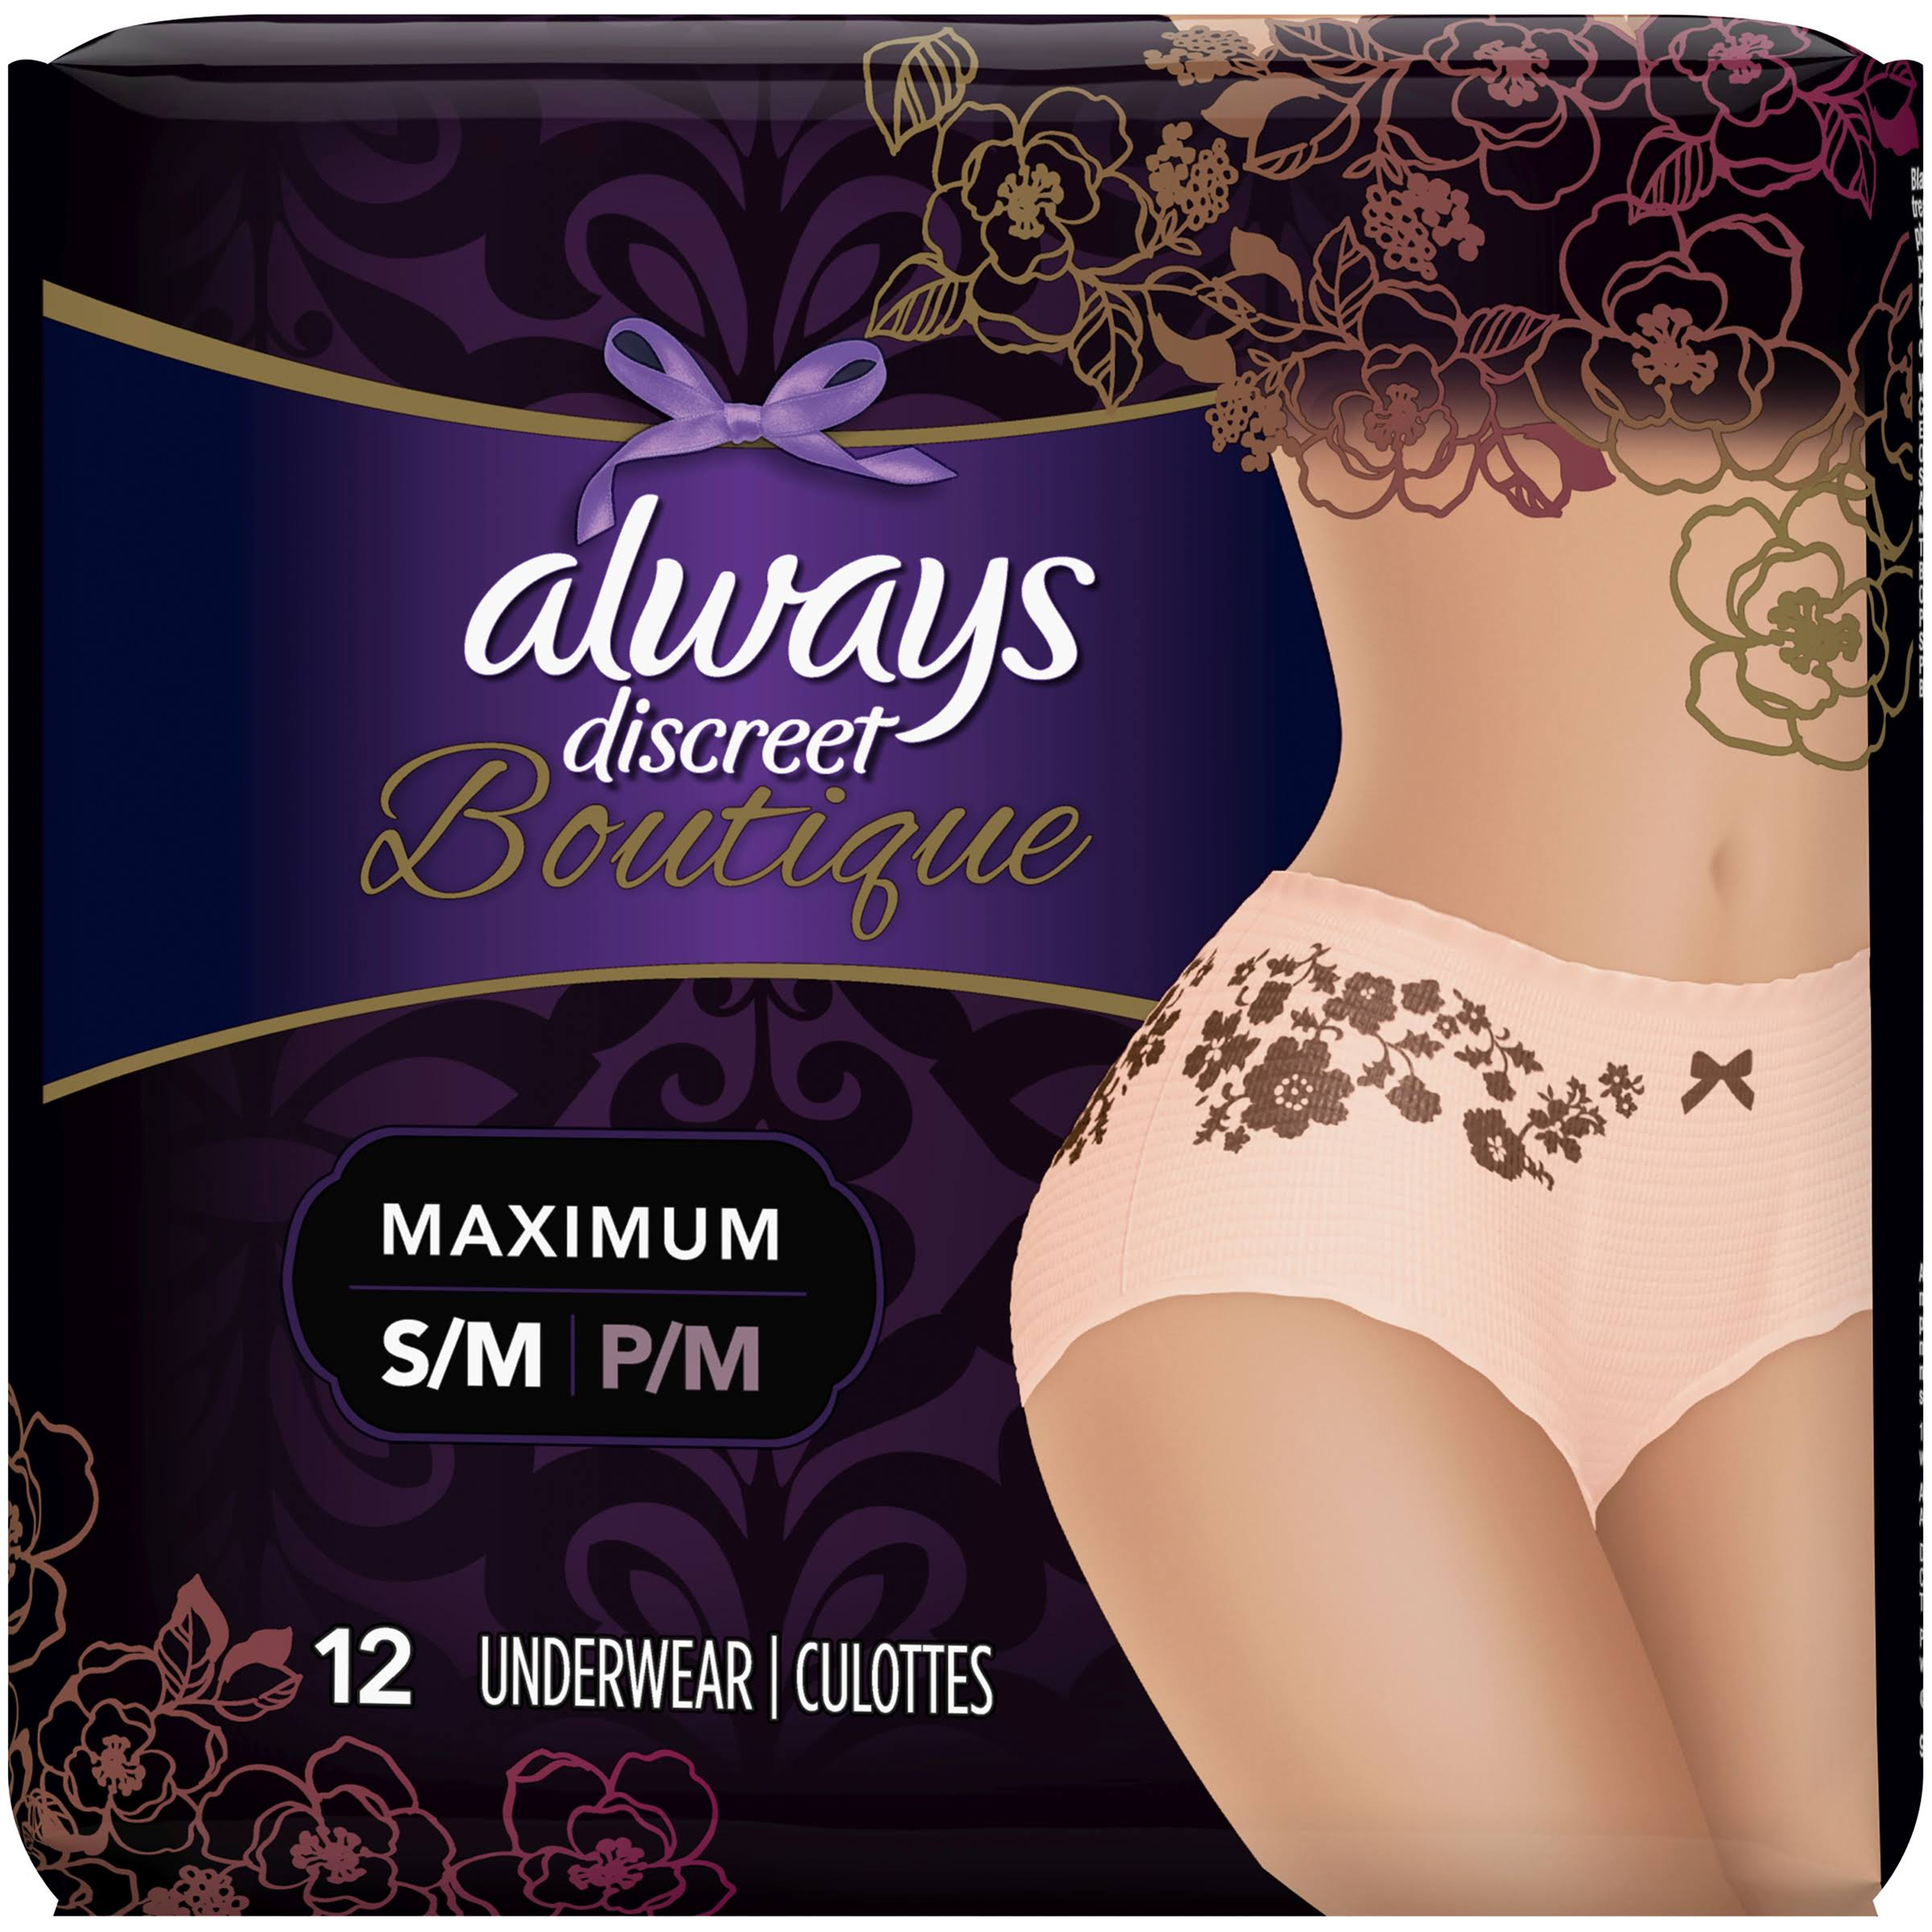 Always Discreet Boutique Maximum Protection Underwear - Small/Medium, 12pcs